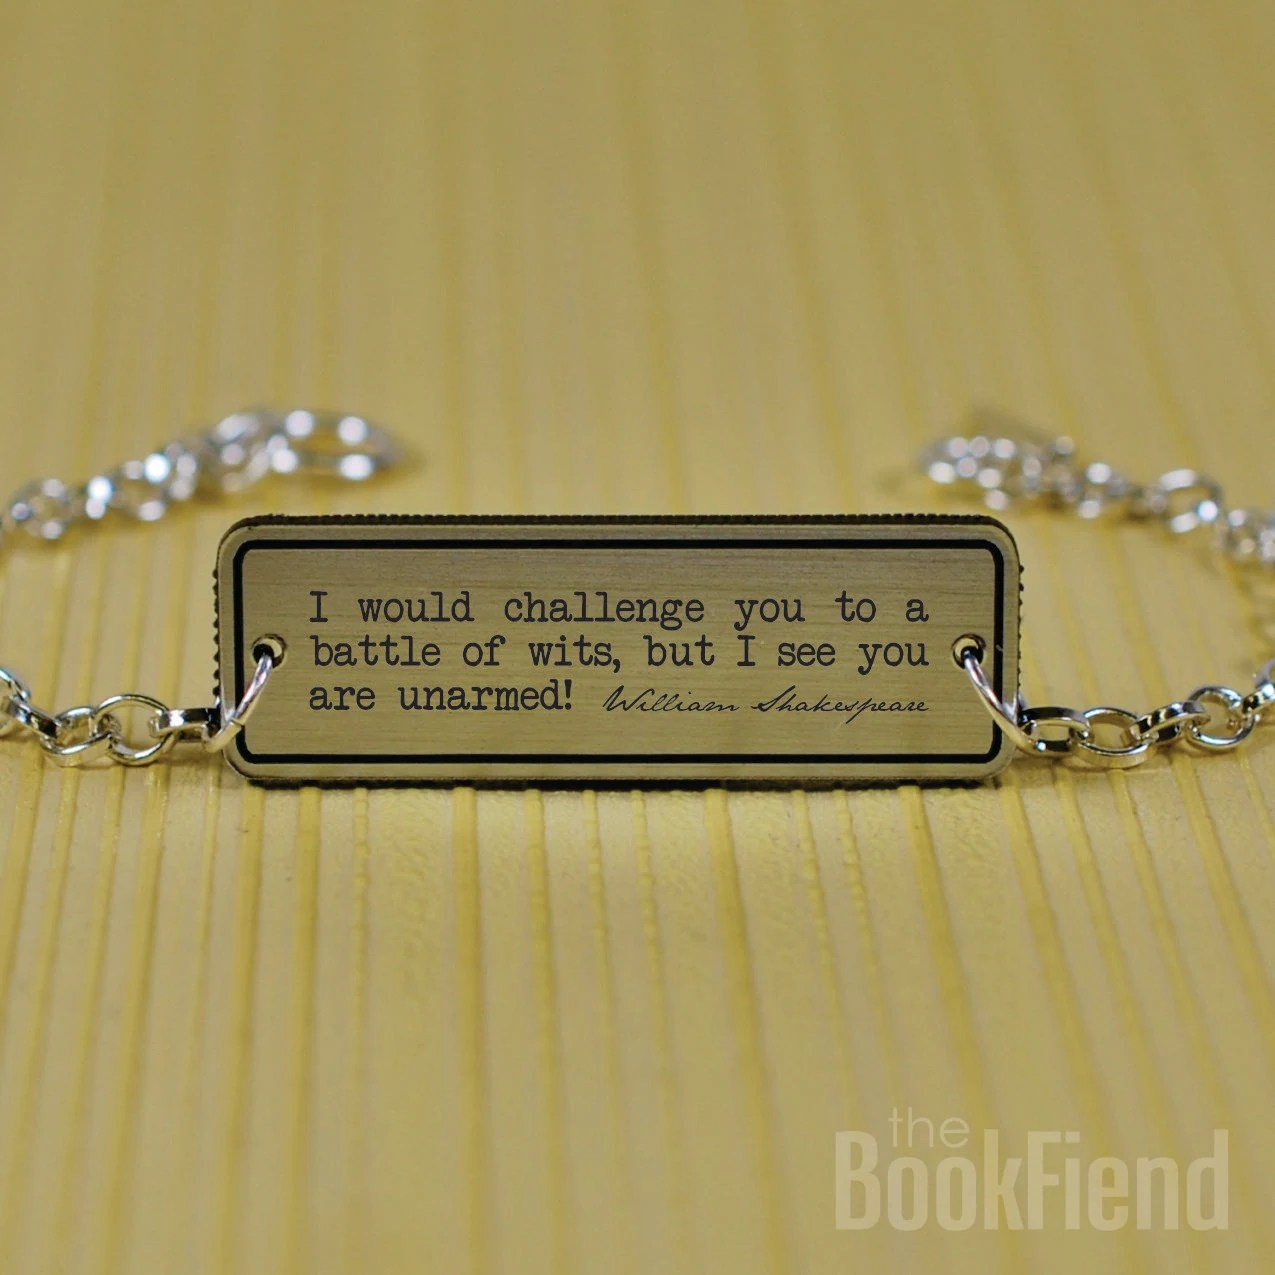 battle of wits Shakespeare acrylic engraved bracelet